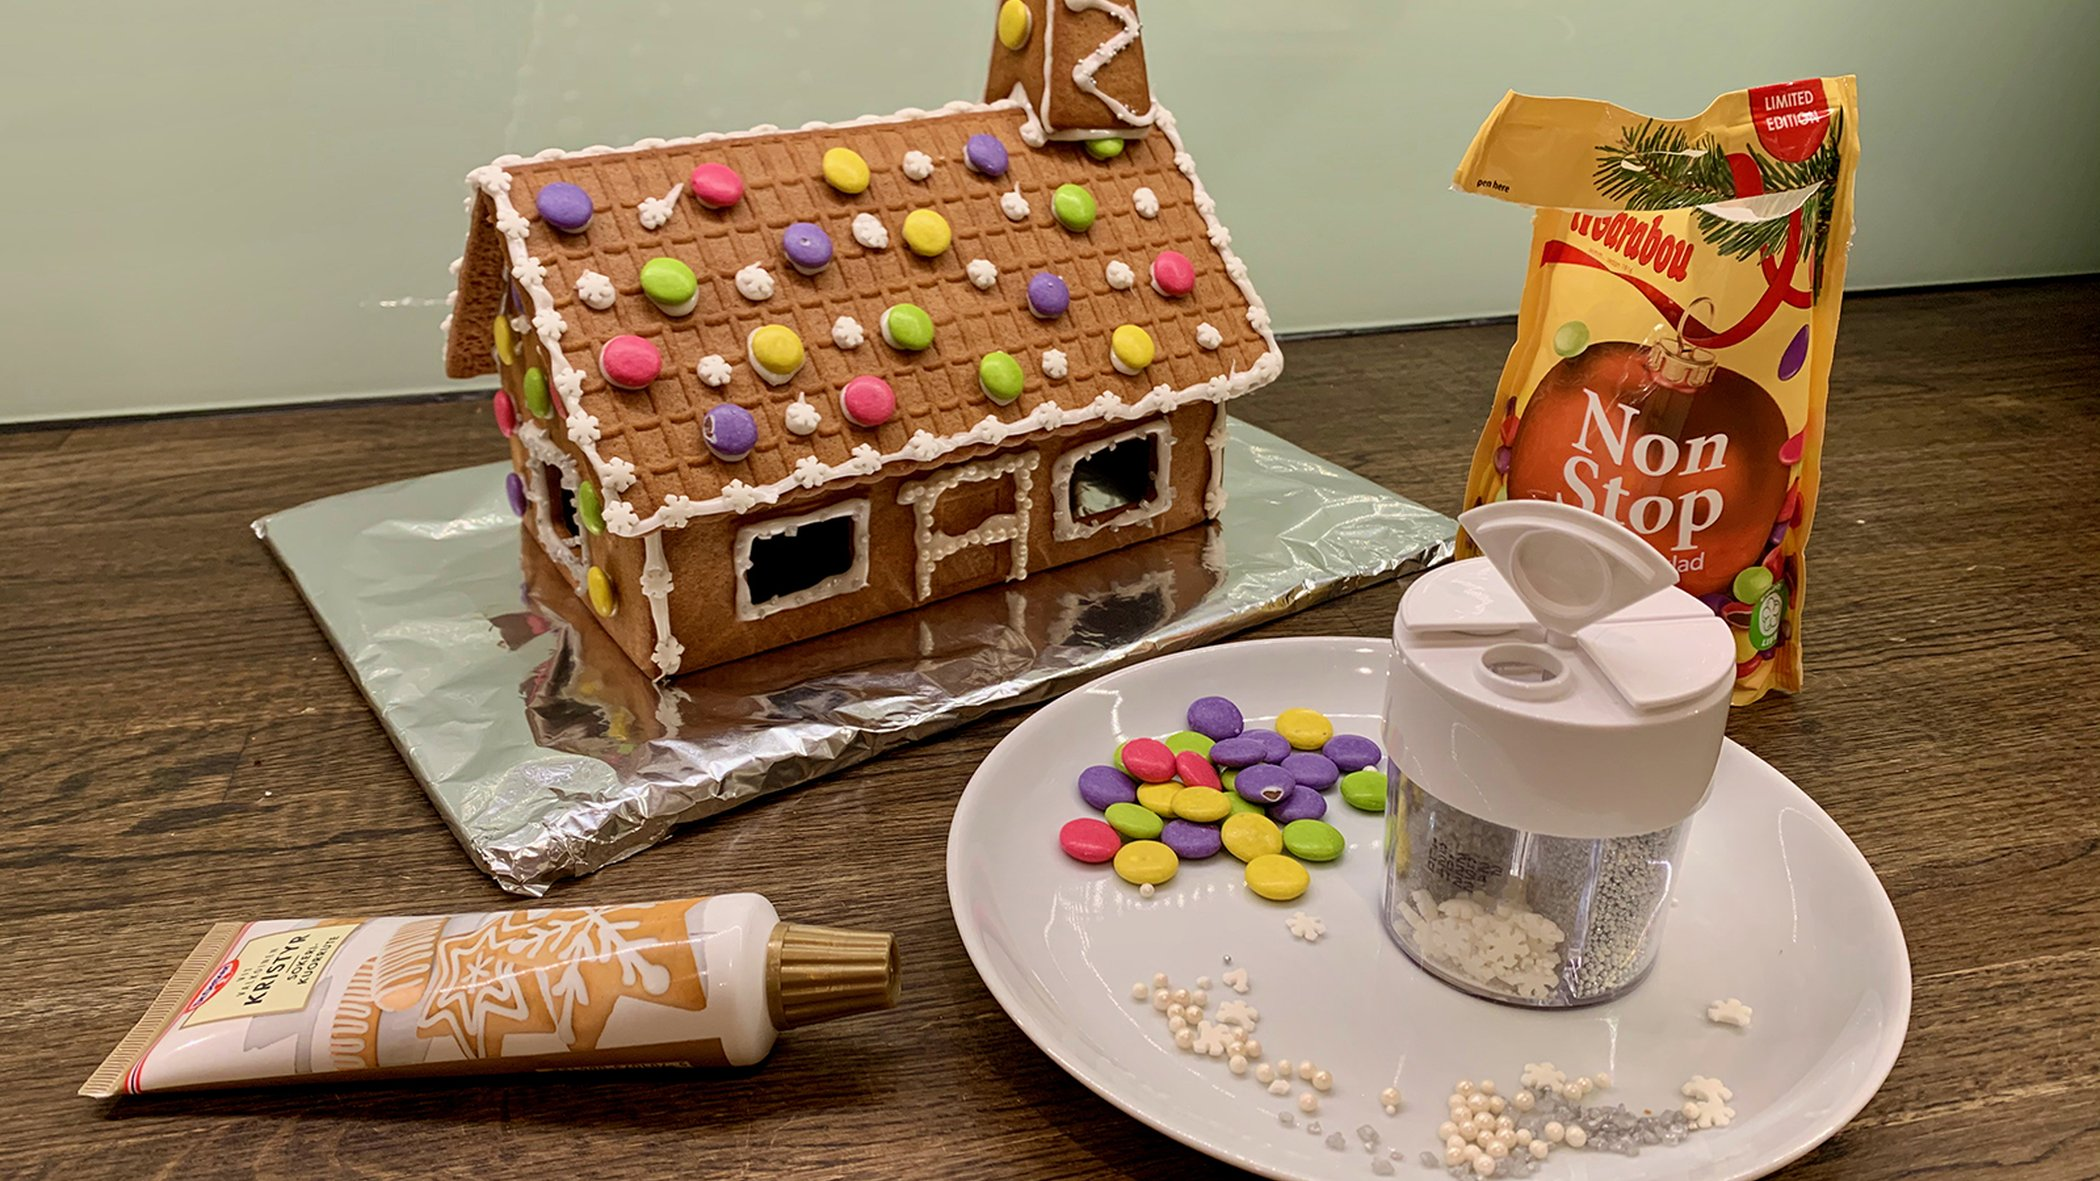 Newly finished gingerbread house along with candy decorations and frosting used to make it.